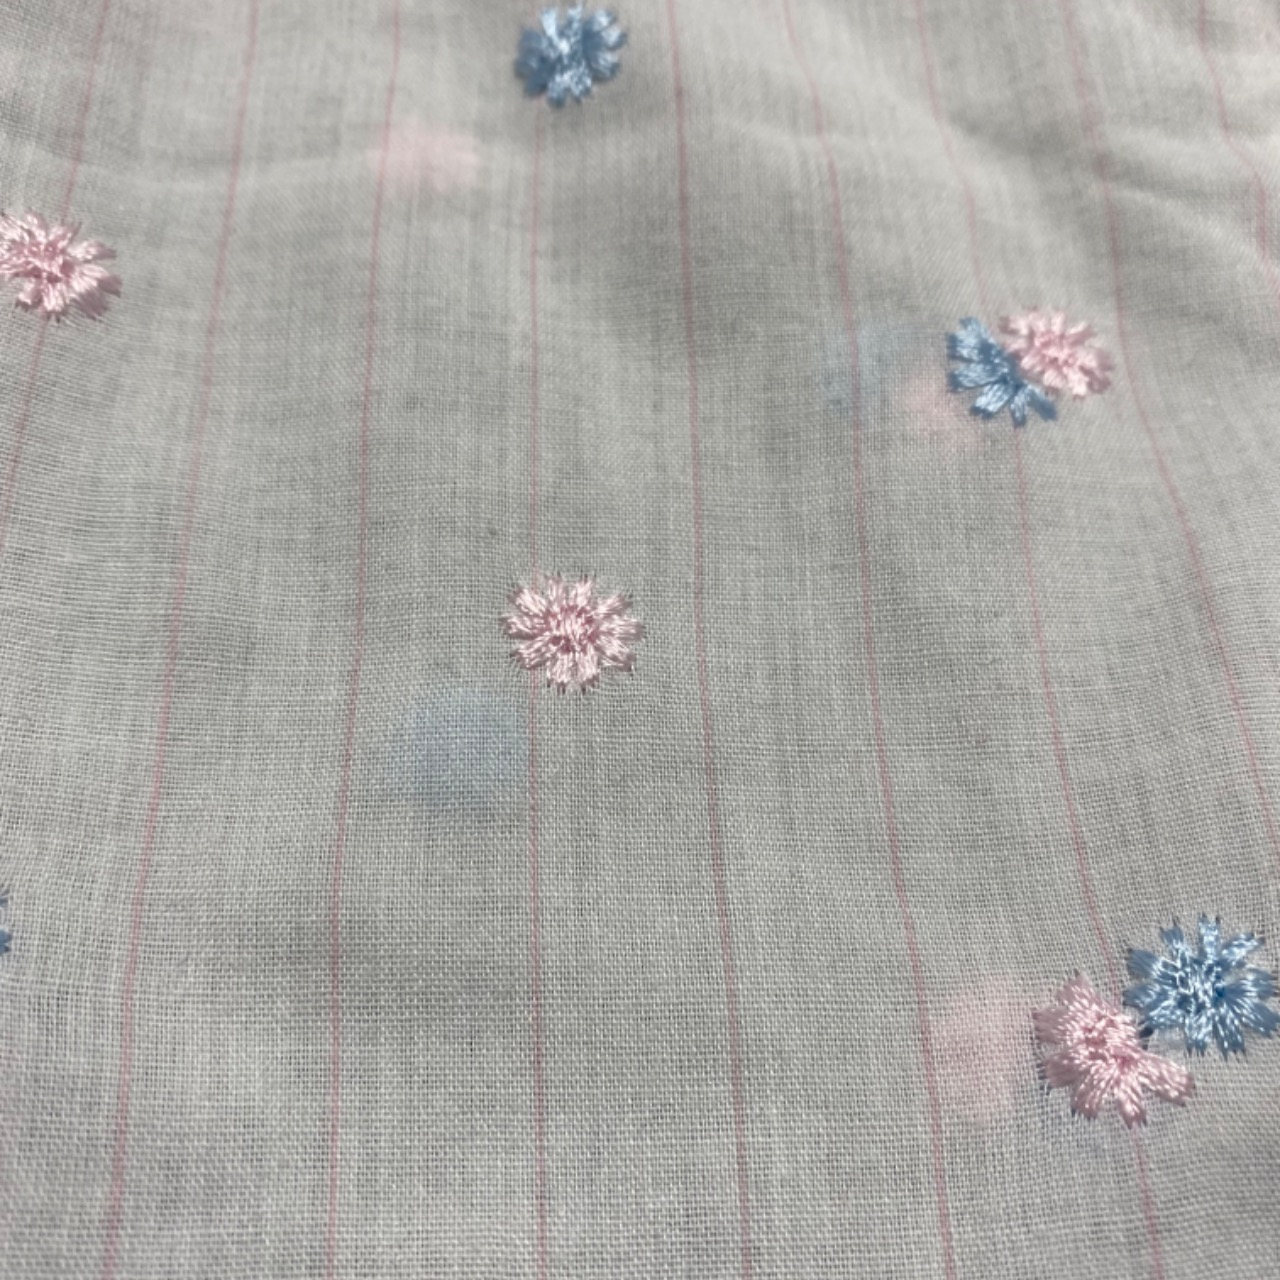 Girls VINTAGE 2 Pce NIGHTIE & BEDCOAT Size 4  White   w/ Pink & Blue Embroidered flowers MADE IN AUSTRALIA